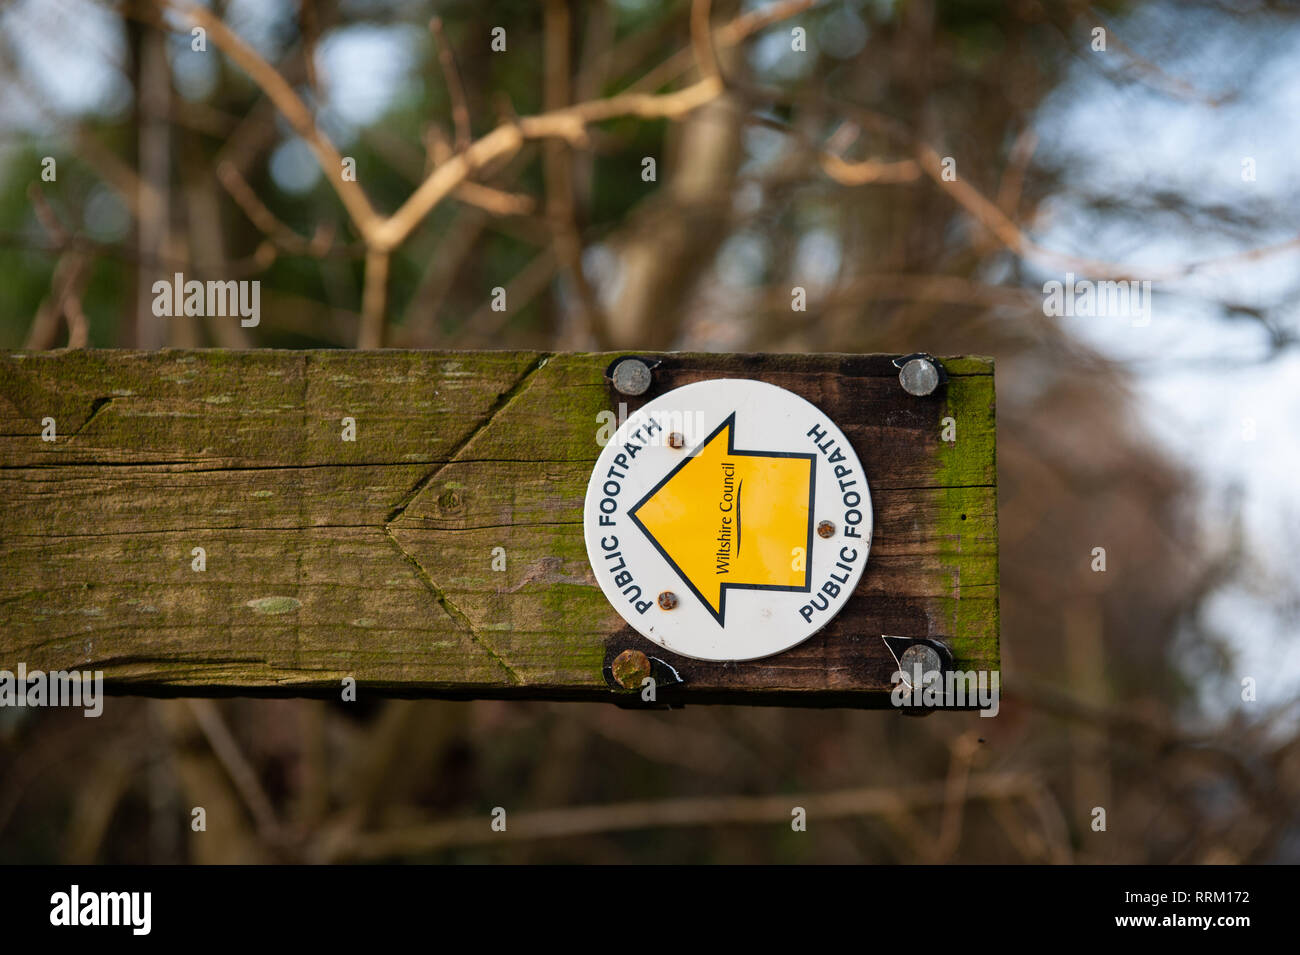 Sign indicating the route of a Public Footpath near Dilton Marsh, Wiltshire, UK. - Stock Image